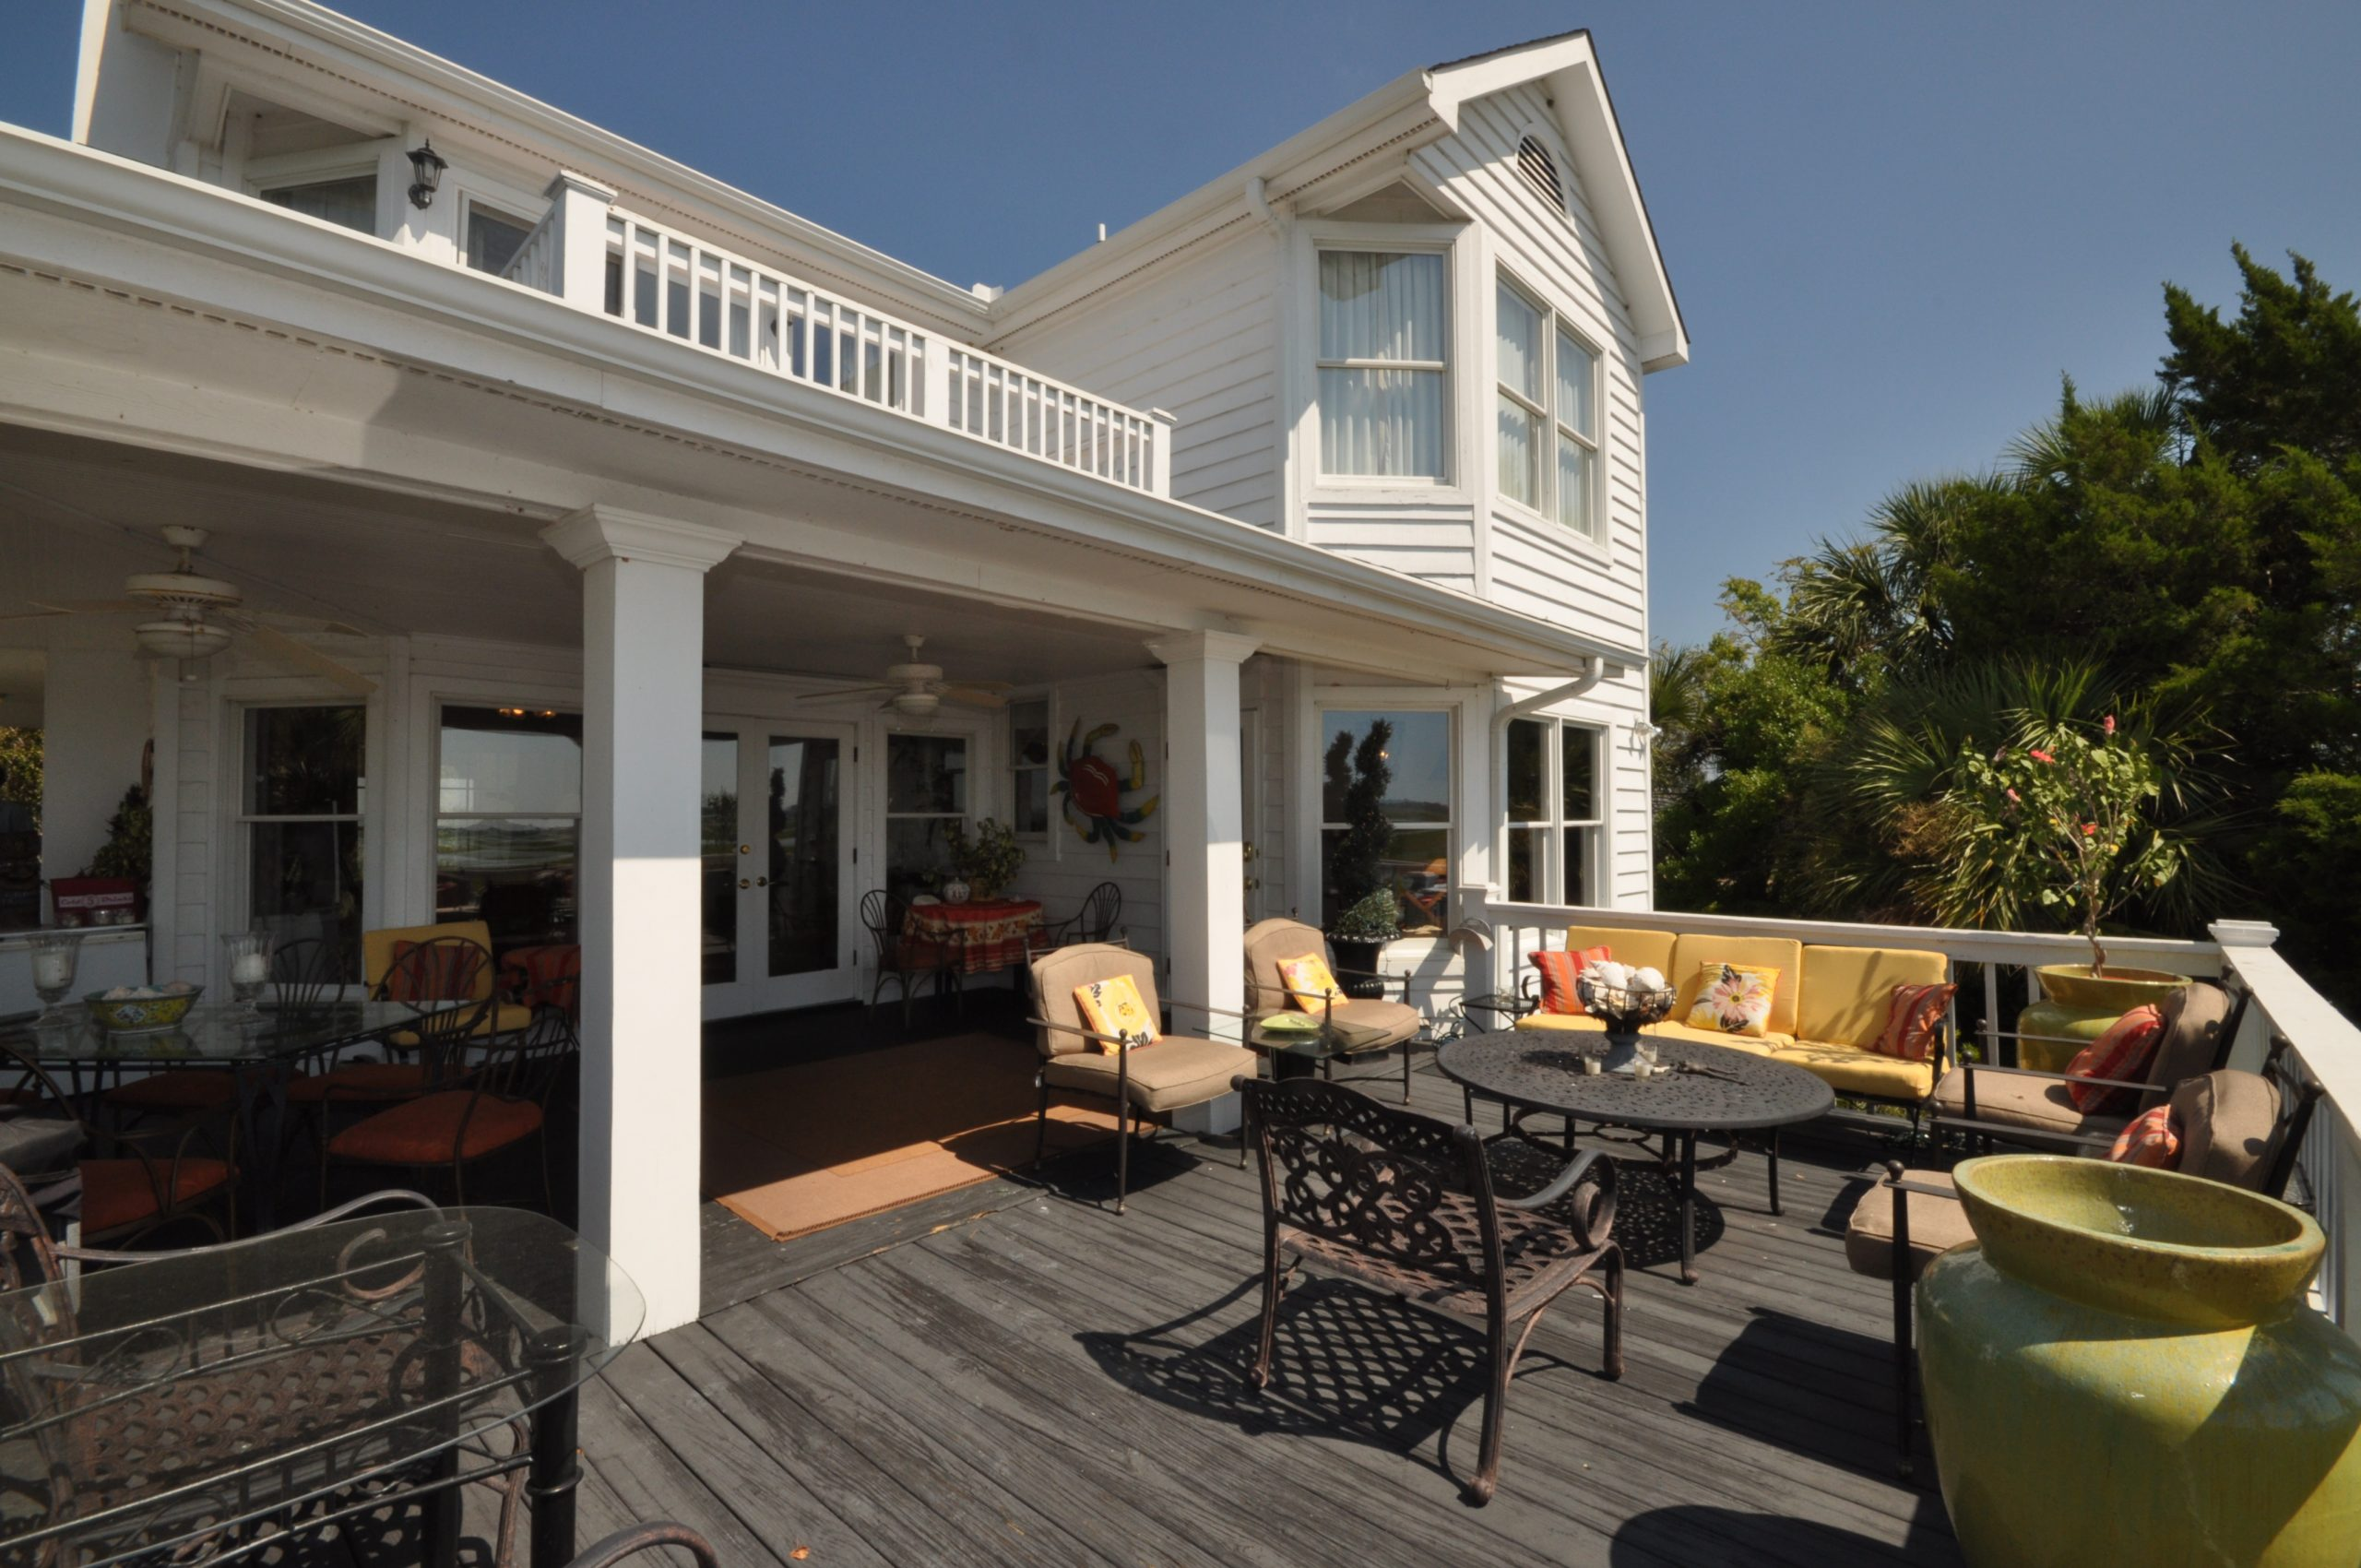 Monmouth County NJ Custom wood deck with white railings, colorful pillows, covered porch